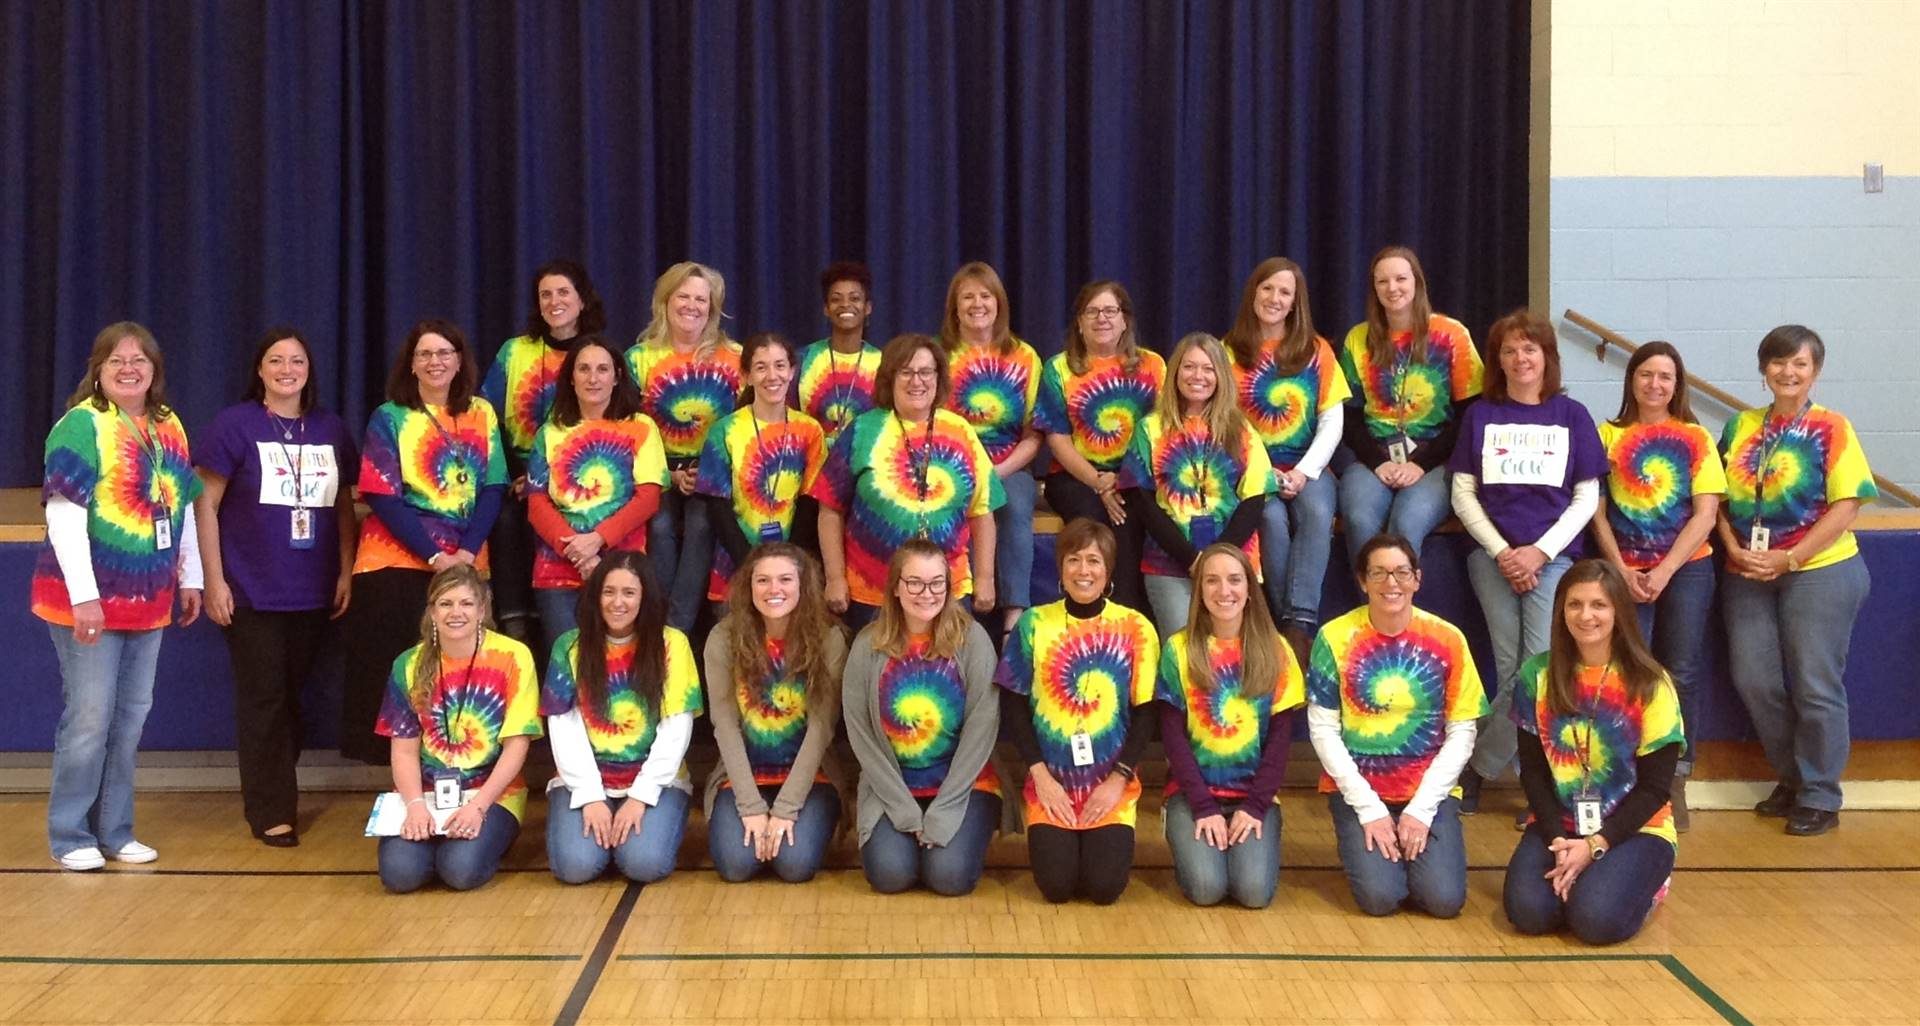 GP Staff Wearing Tie-Dyed T-Shirts